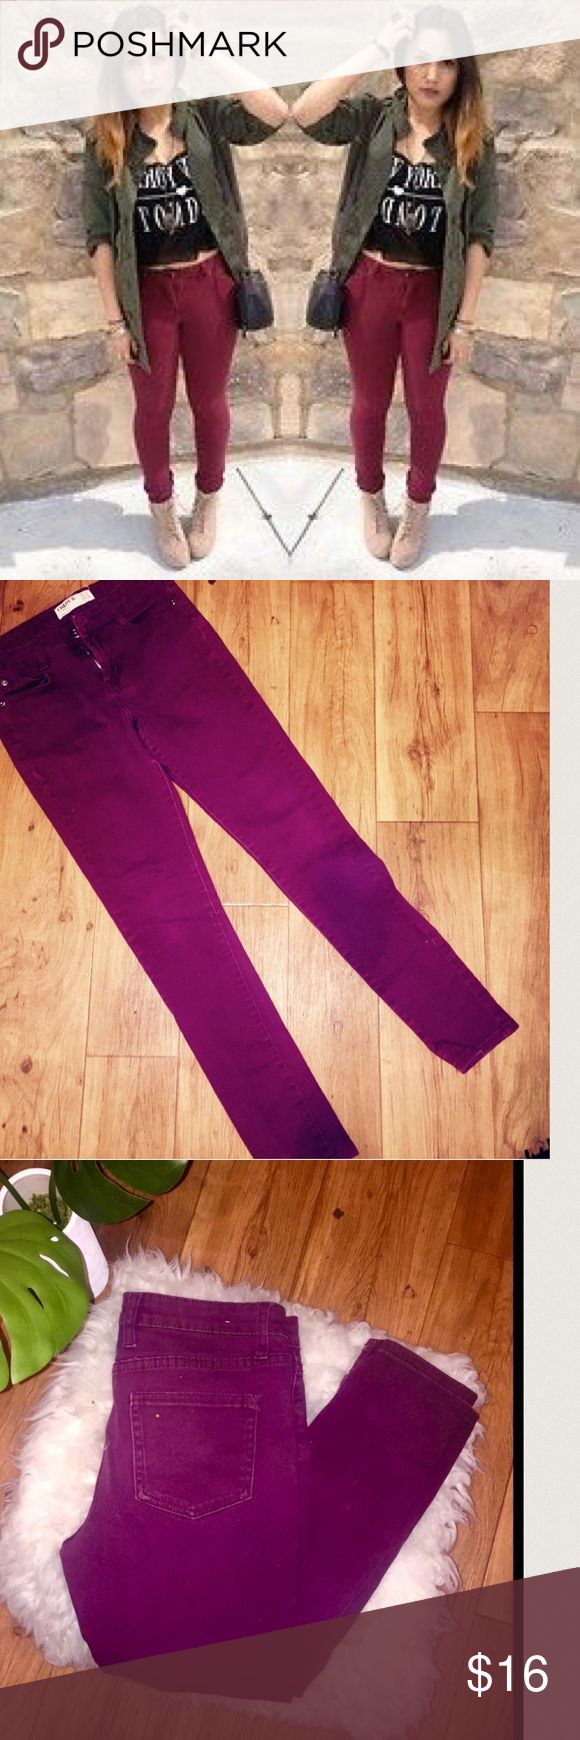 Maroon skinny jeans 🎱🎱Burgundy- Maroon Skinny Jeans  - size 6  - Good Condition  - purchased from PACSUN < Coulor brand  - hugged tight fit Mossimo Supply Co Jeans Skinny